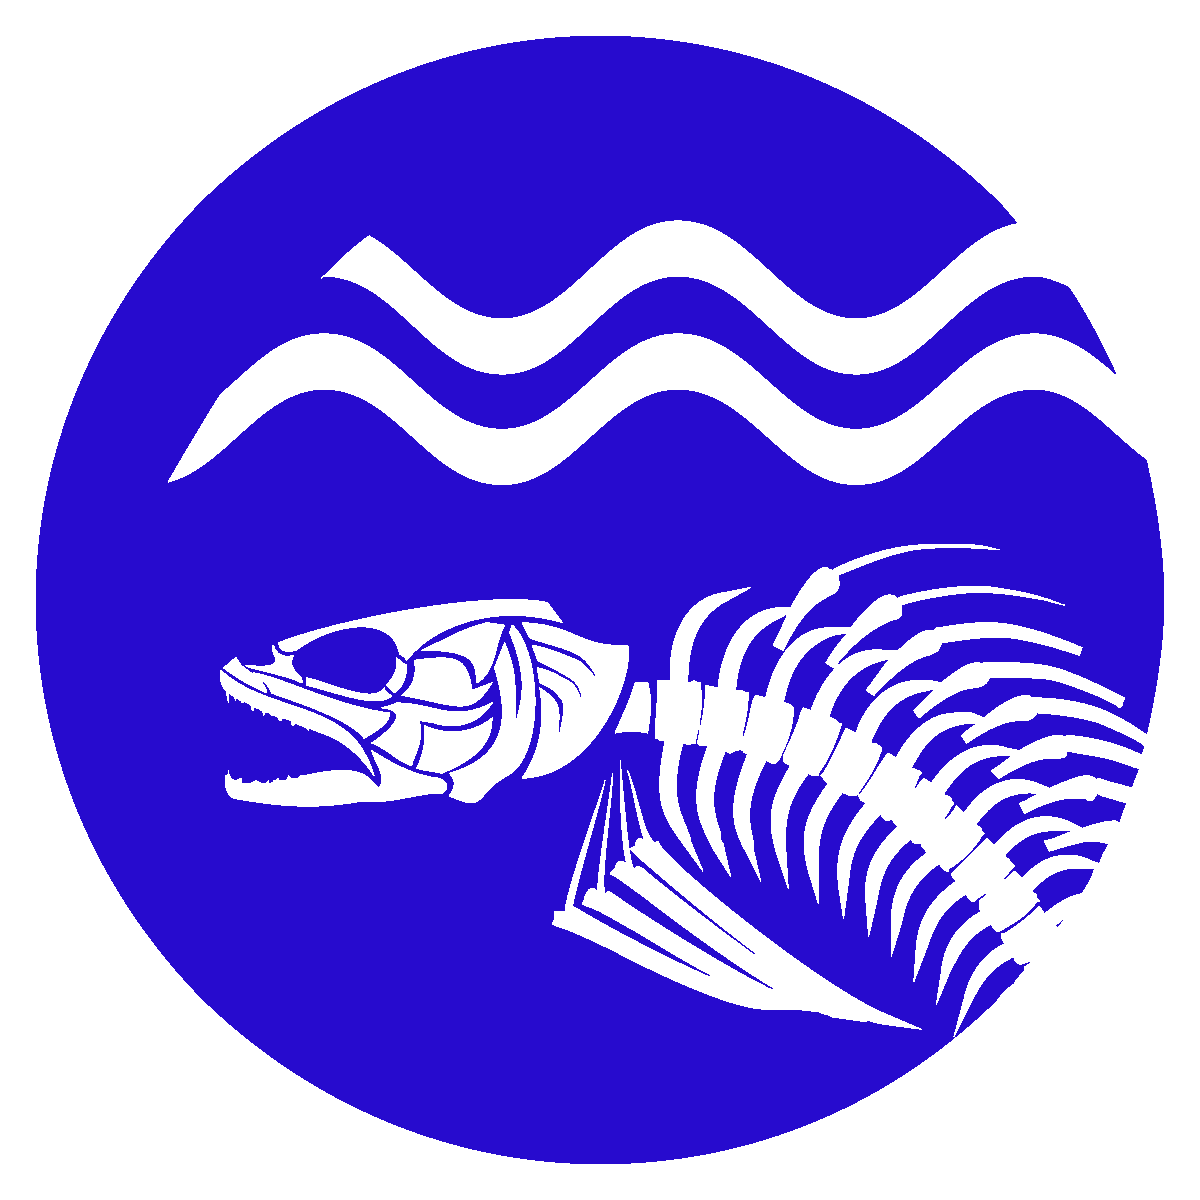 underwater_observatory_map_icon